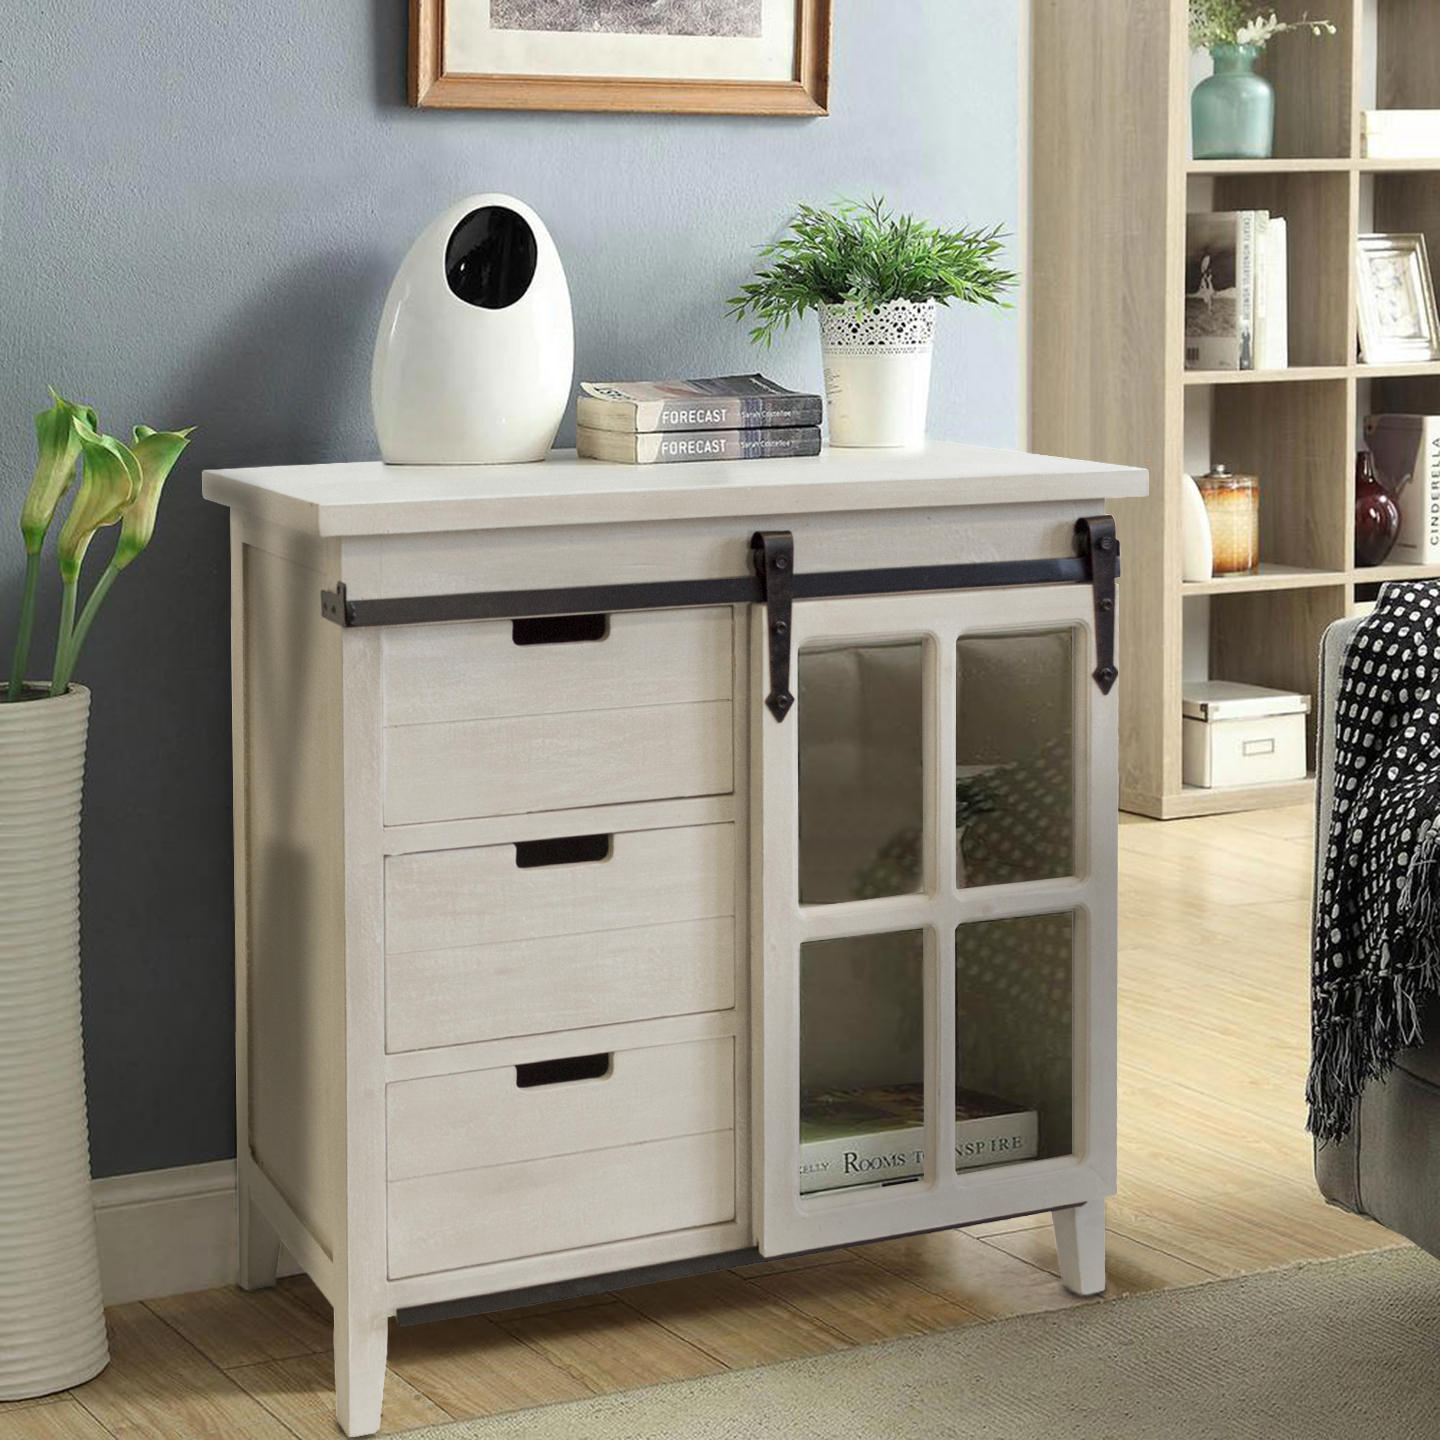 OS Home And Office Furniture Model 477000 Farm House, Weathered, Barn Door  Style Sliding Glass Door Storage Cabinet With Three Drawers   Walmart.com